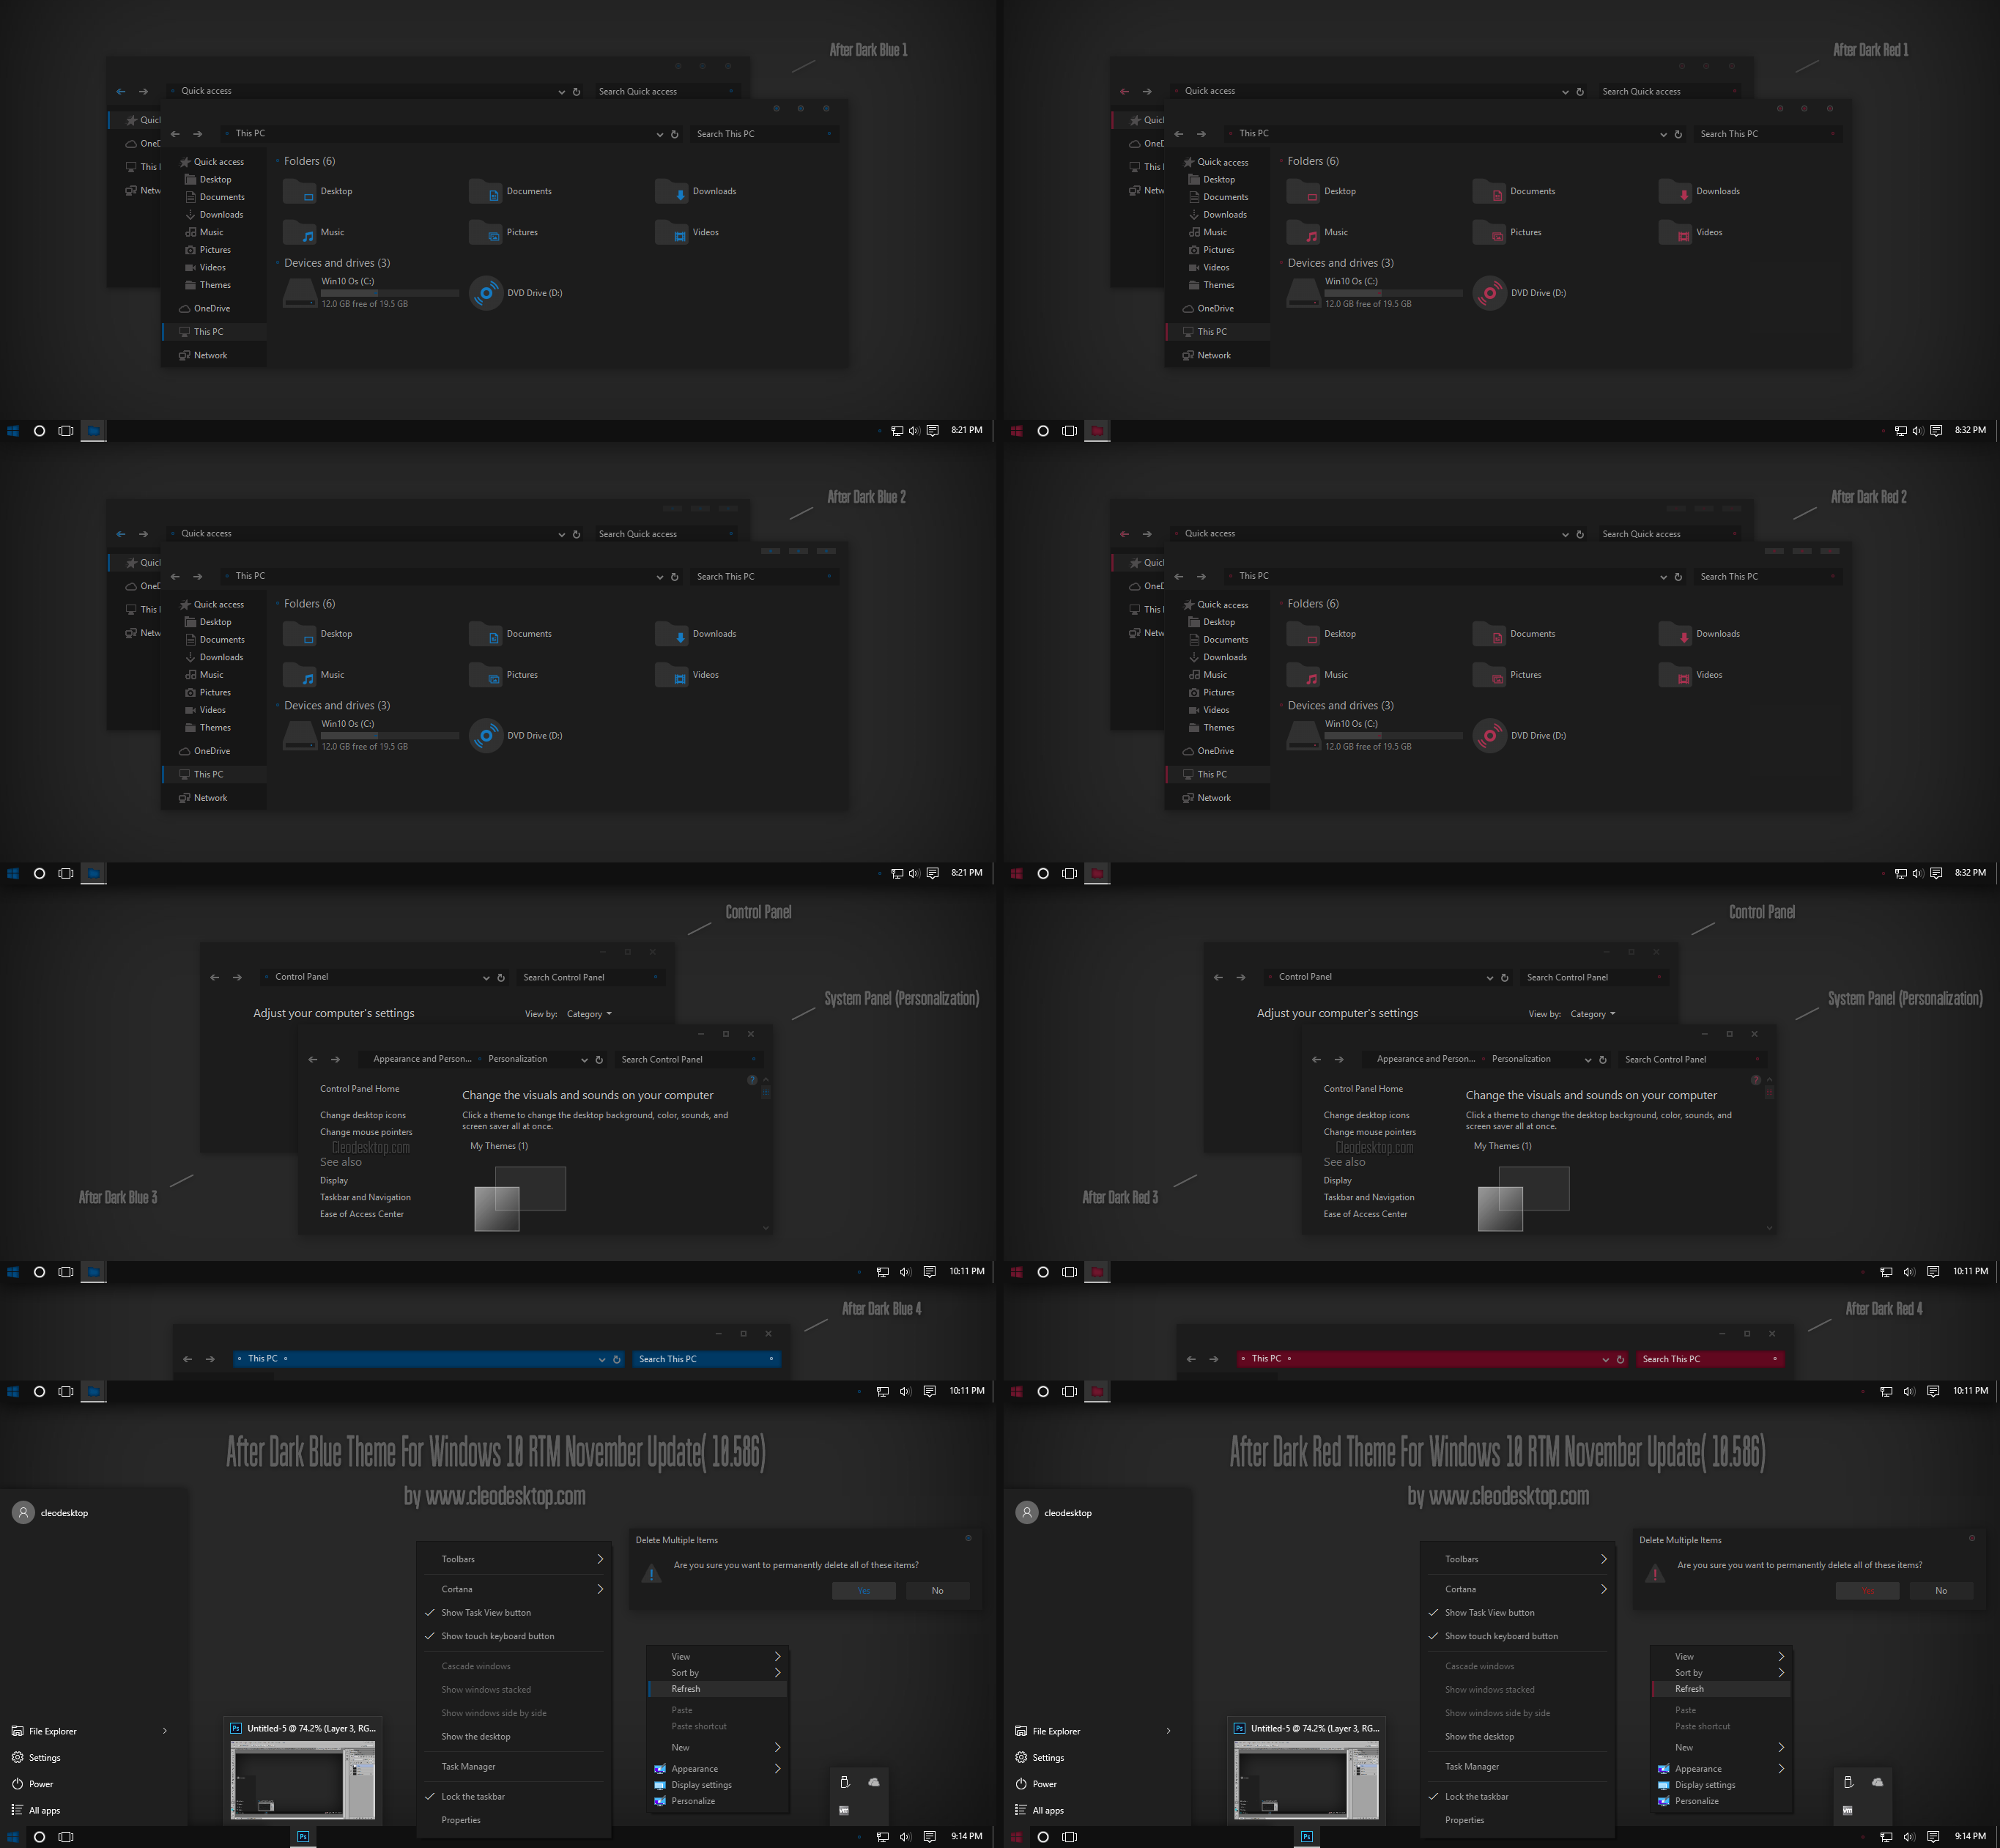 After Dark Blue and Red Theme For Windows 10